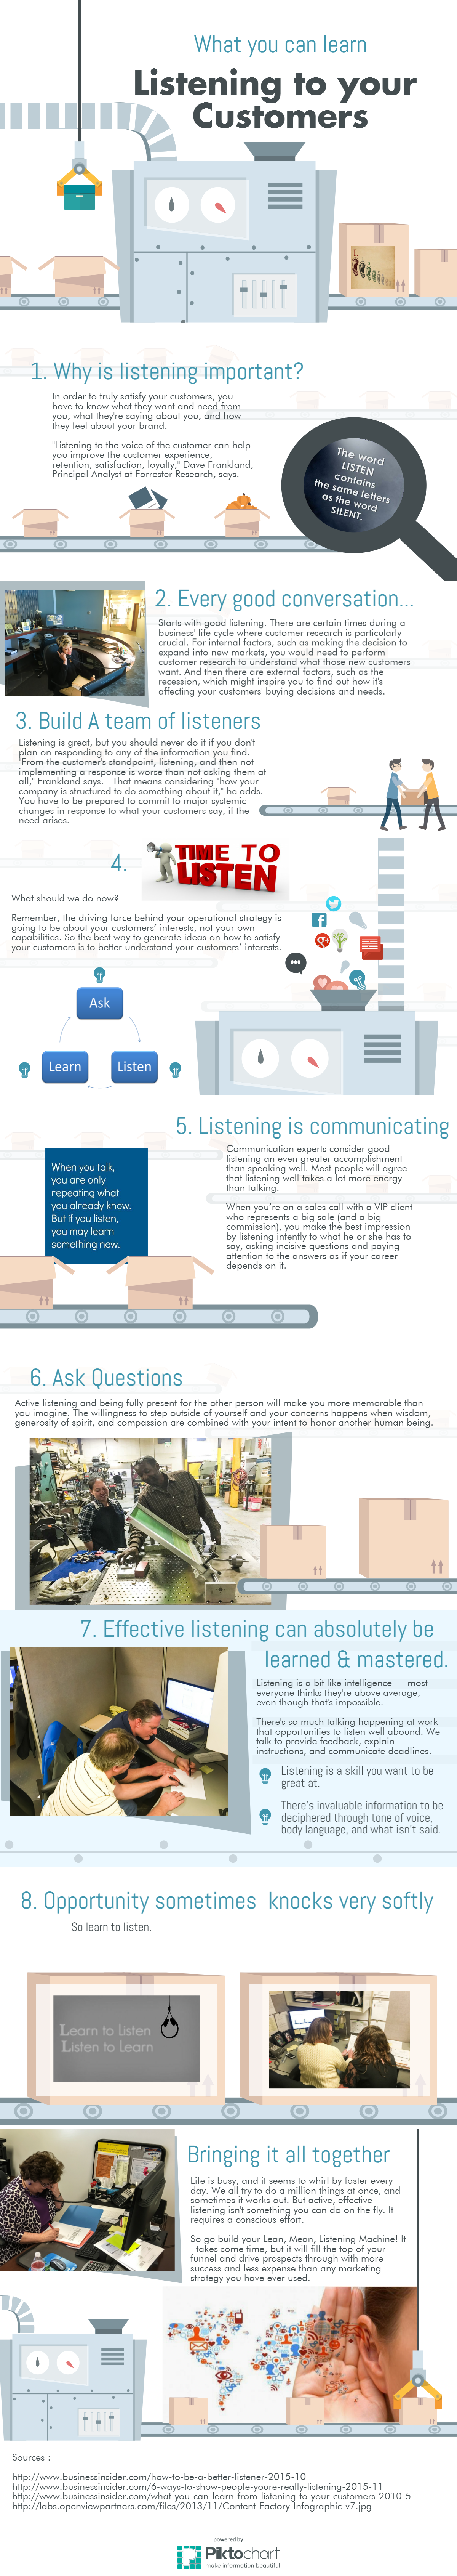 Learn to Listen Infographic